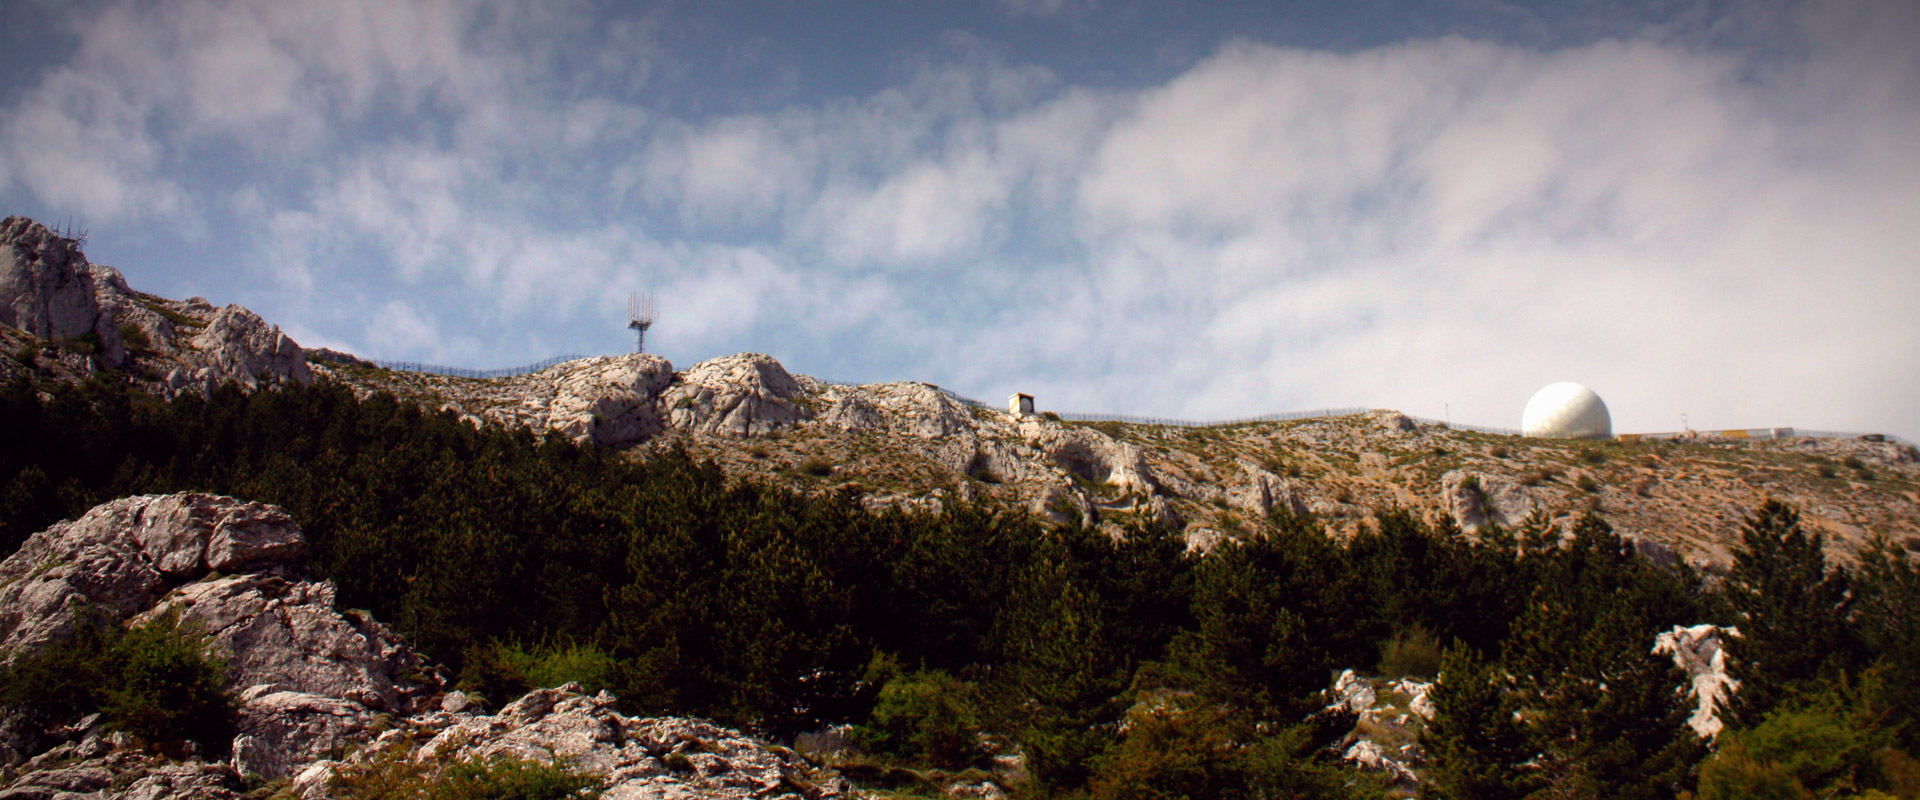 Summit of the Sierra de Aitana